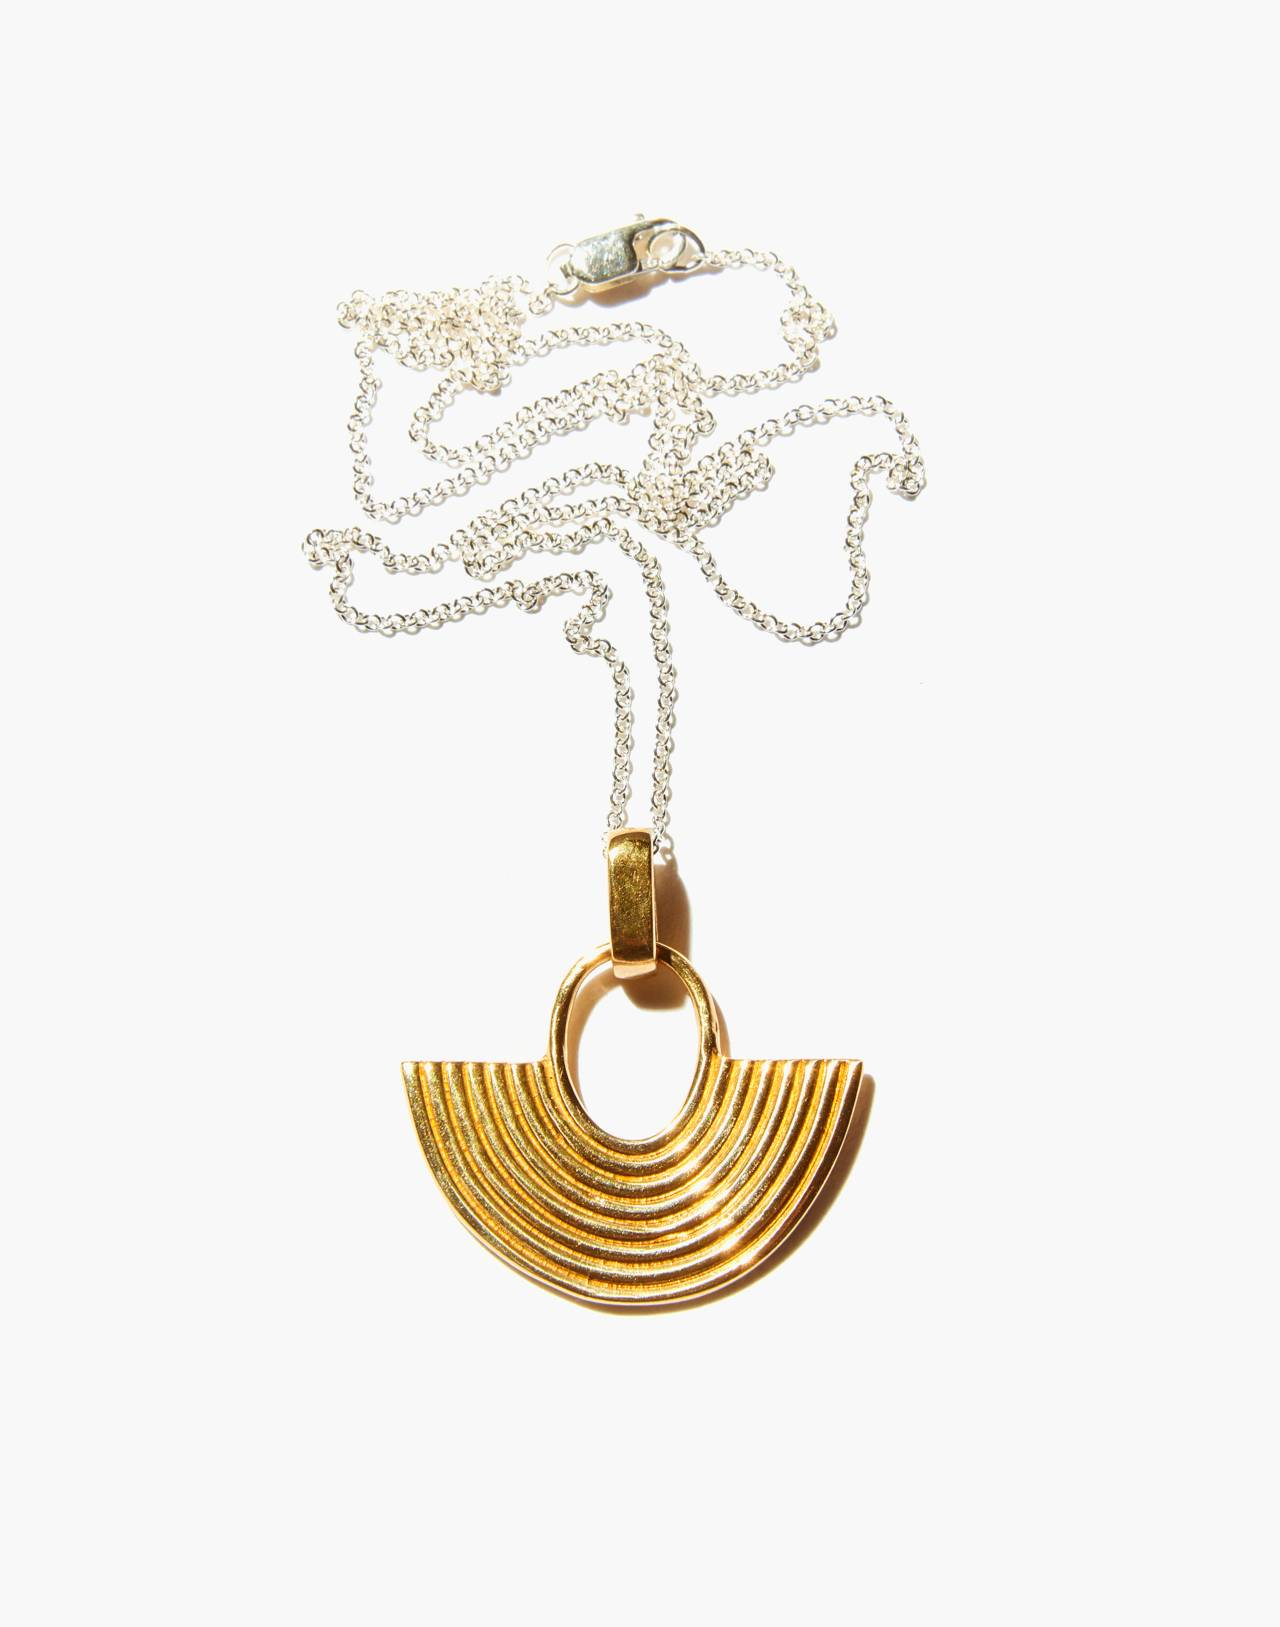 Odette New York® Aalto Necklace in gold image 1